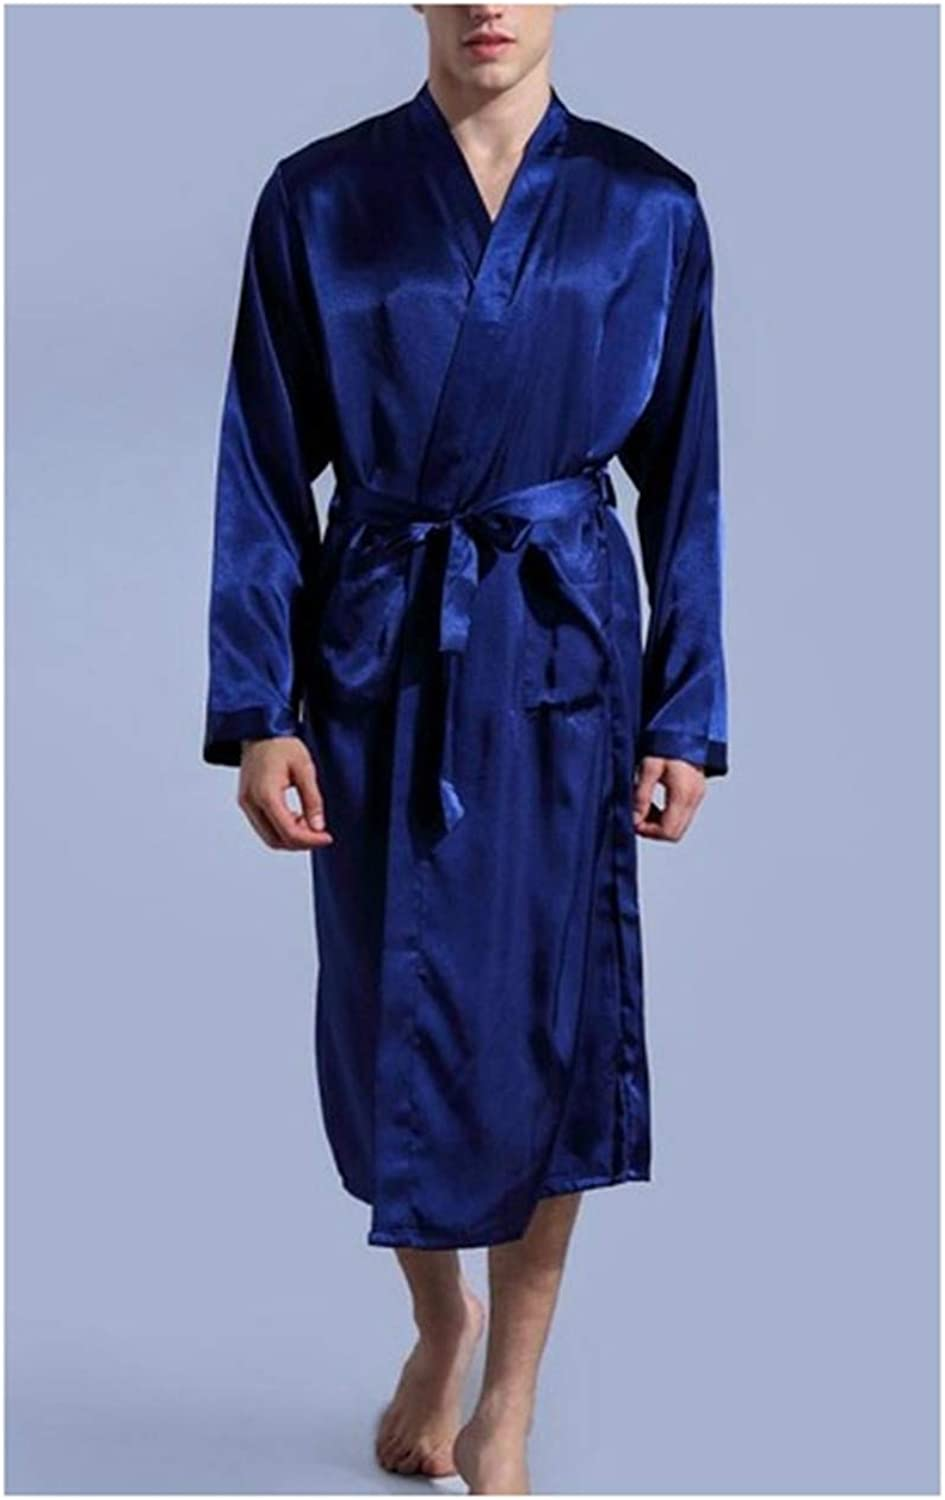 Mens Satin Rayon Robe Gown Solid Color Kimono Bath Gown Lounge Casual Male Nightgown Sleepwear Navy Blue